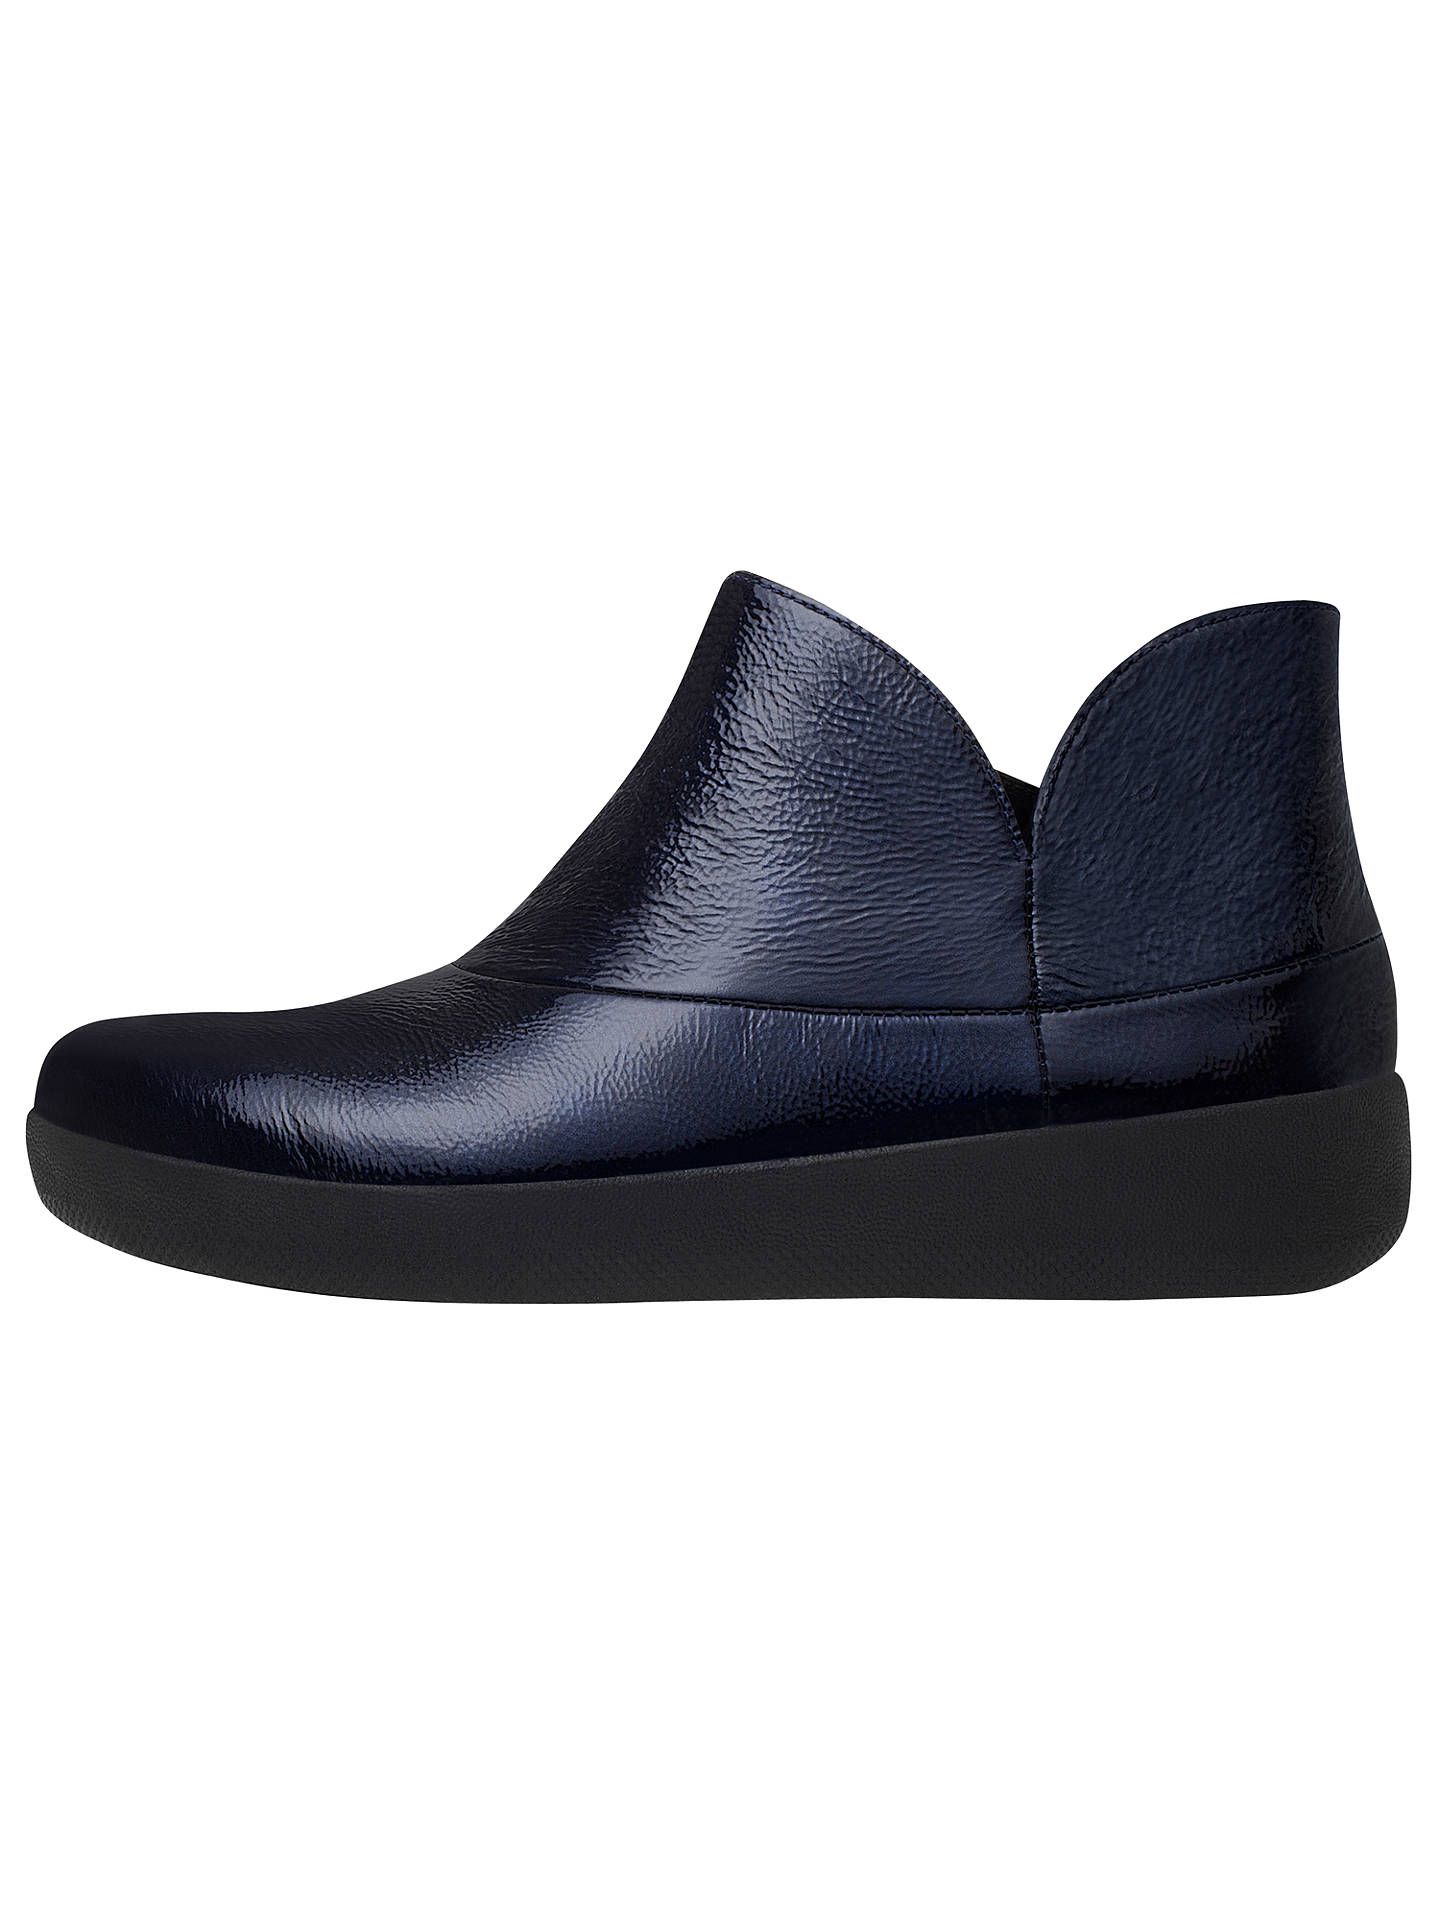 822d98bffb2 FitFlop Supermod Ankle Boots, Inky Blue at John Lewis & Partners